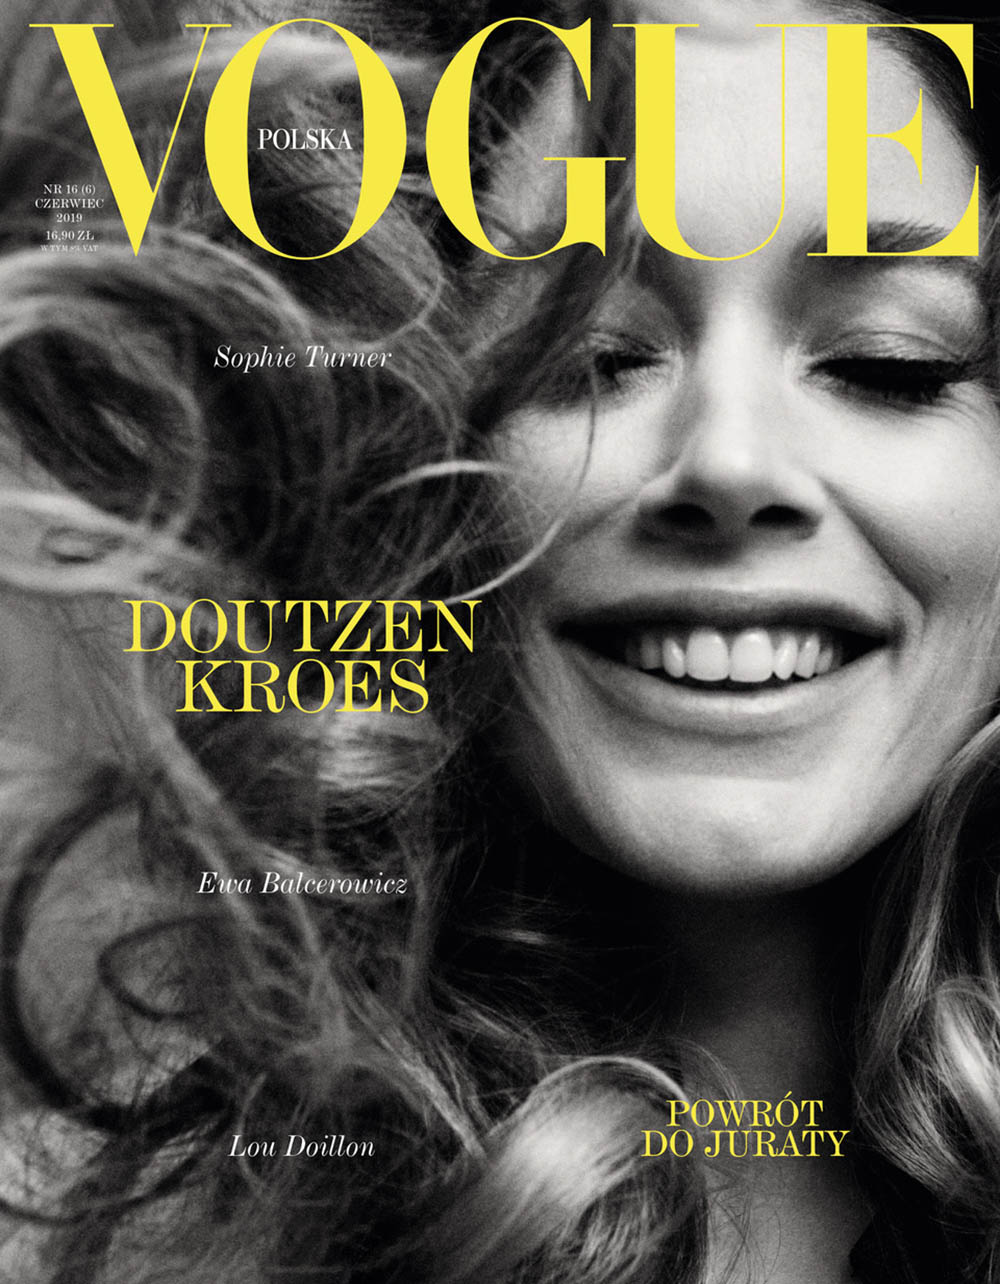 Doutzen Kroes covers Vogue Poland June 2019 by Daniel Jackson